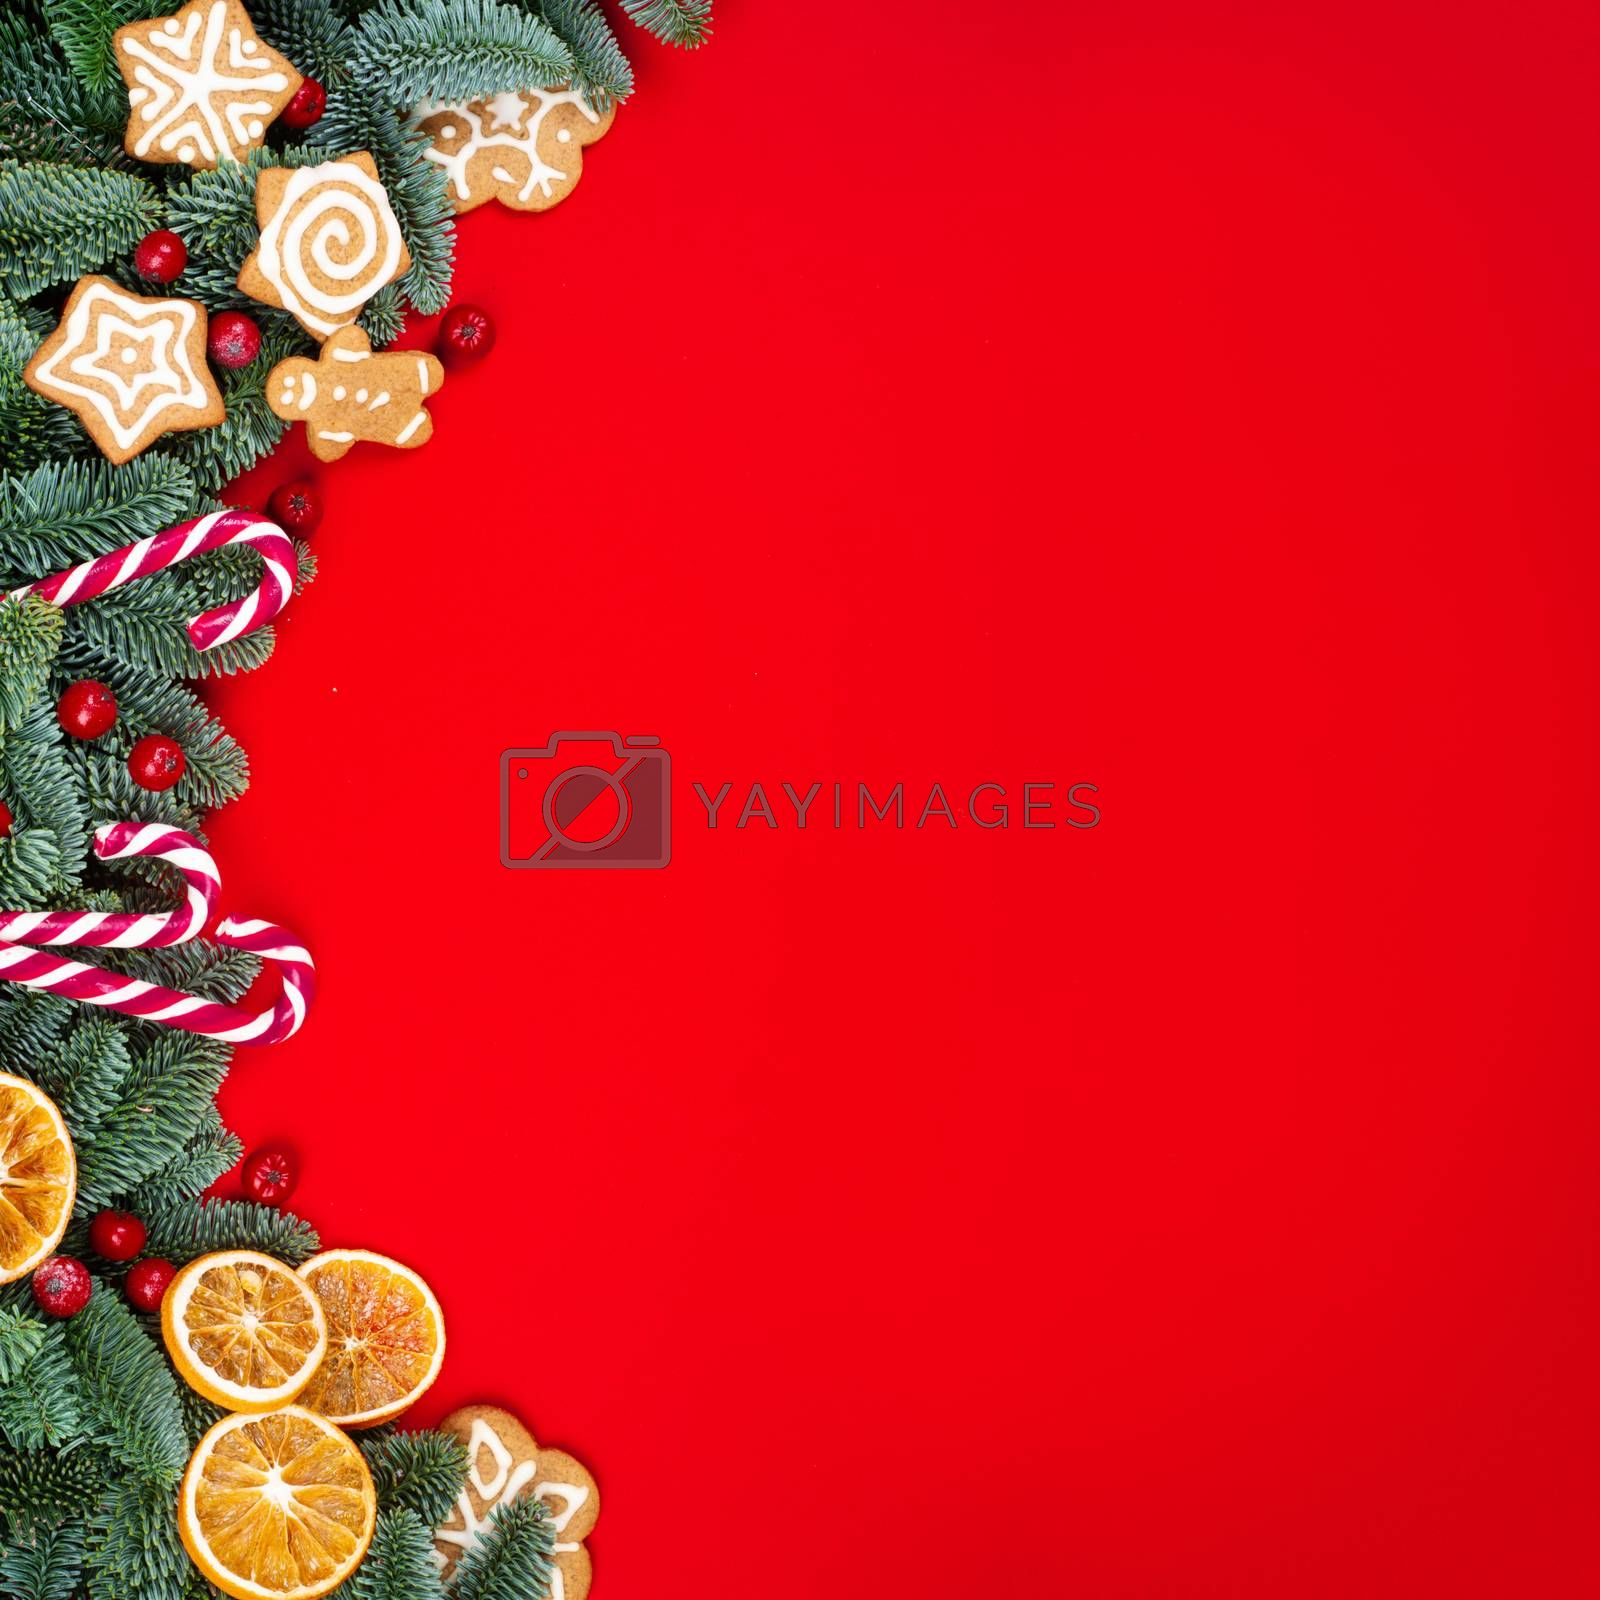 Christmas fir tree branches and decor border frame on red background with copy space for text